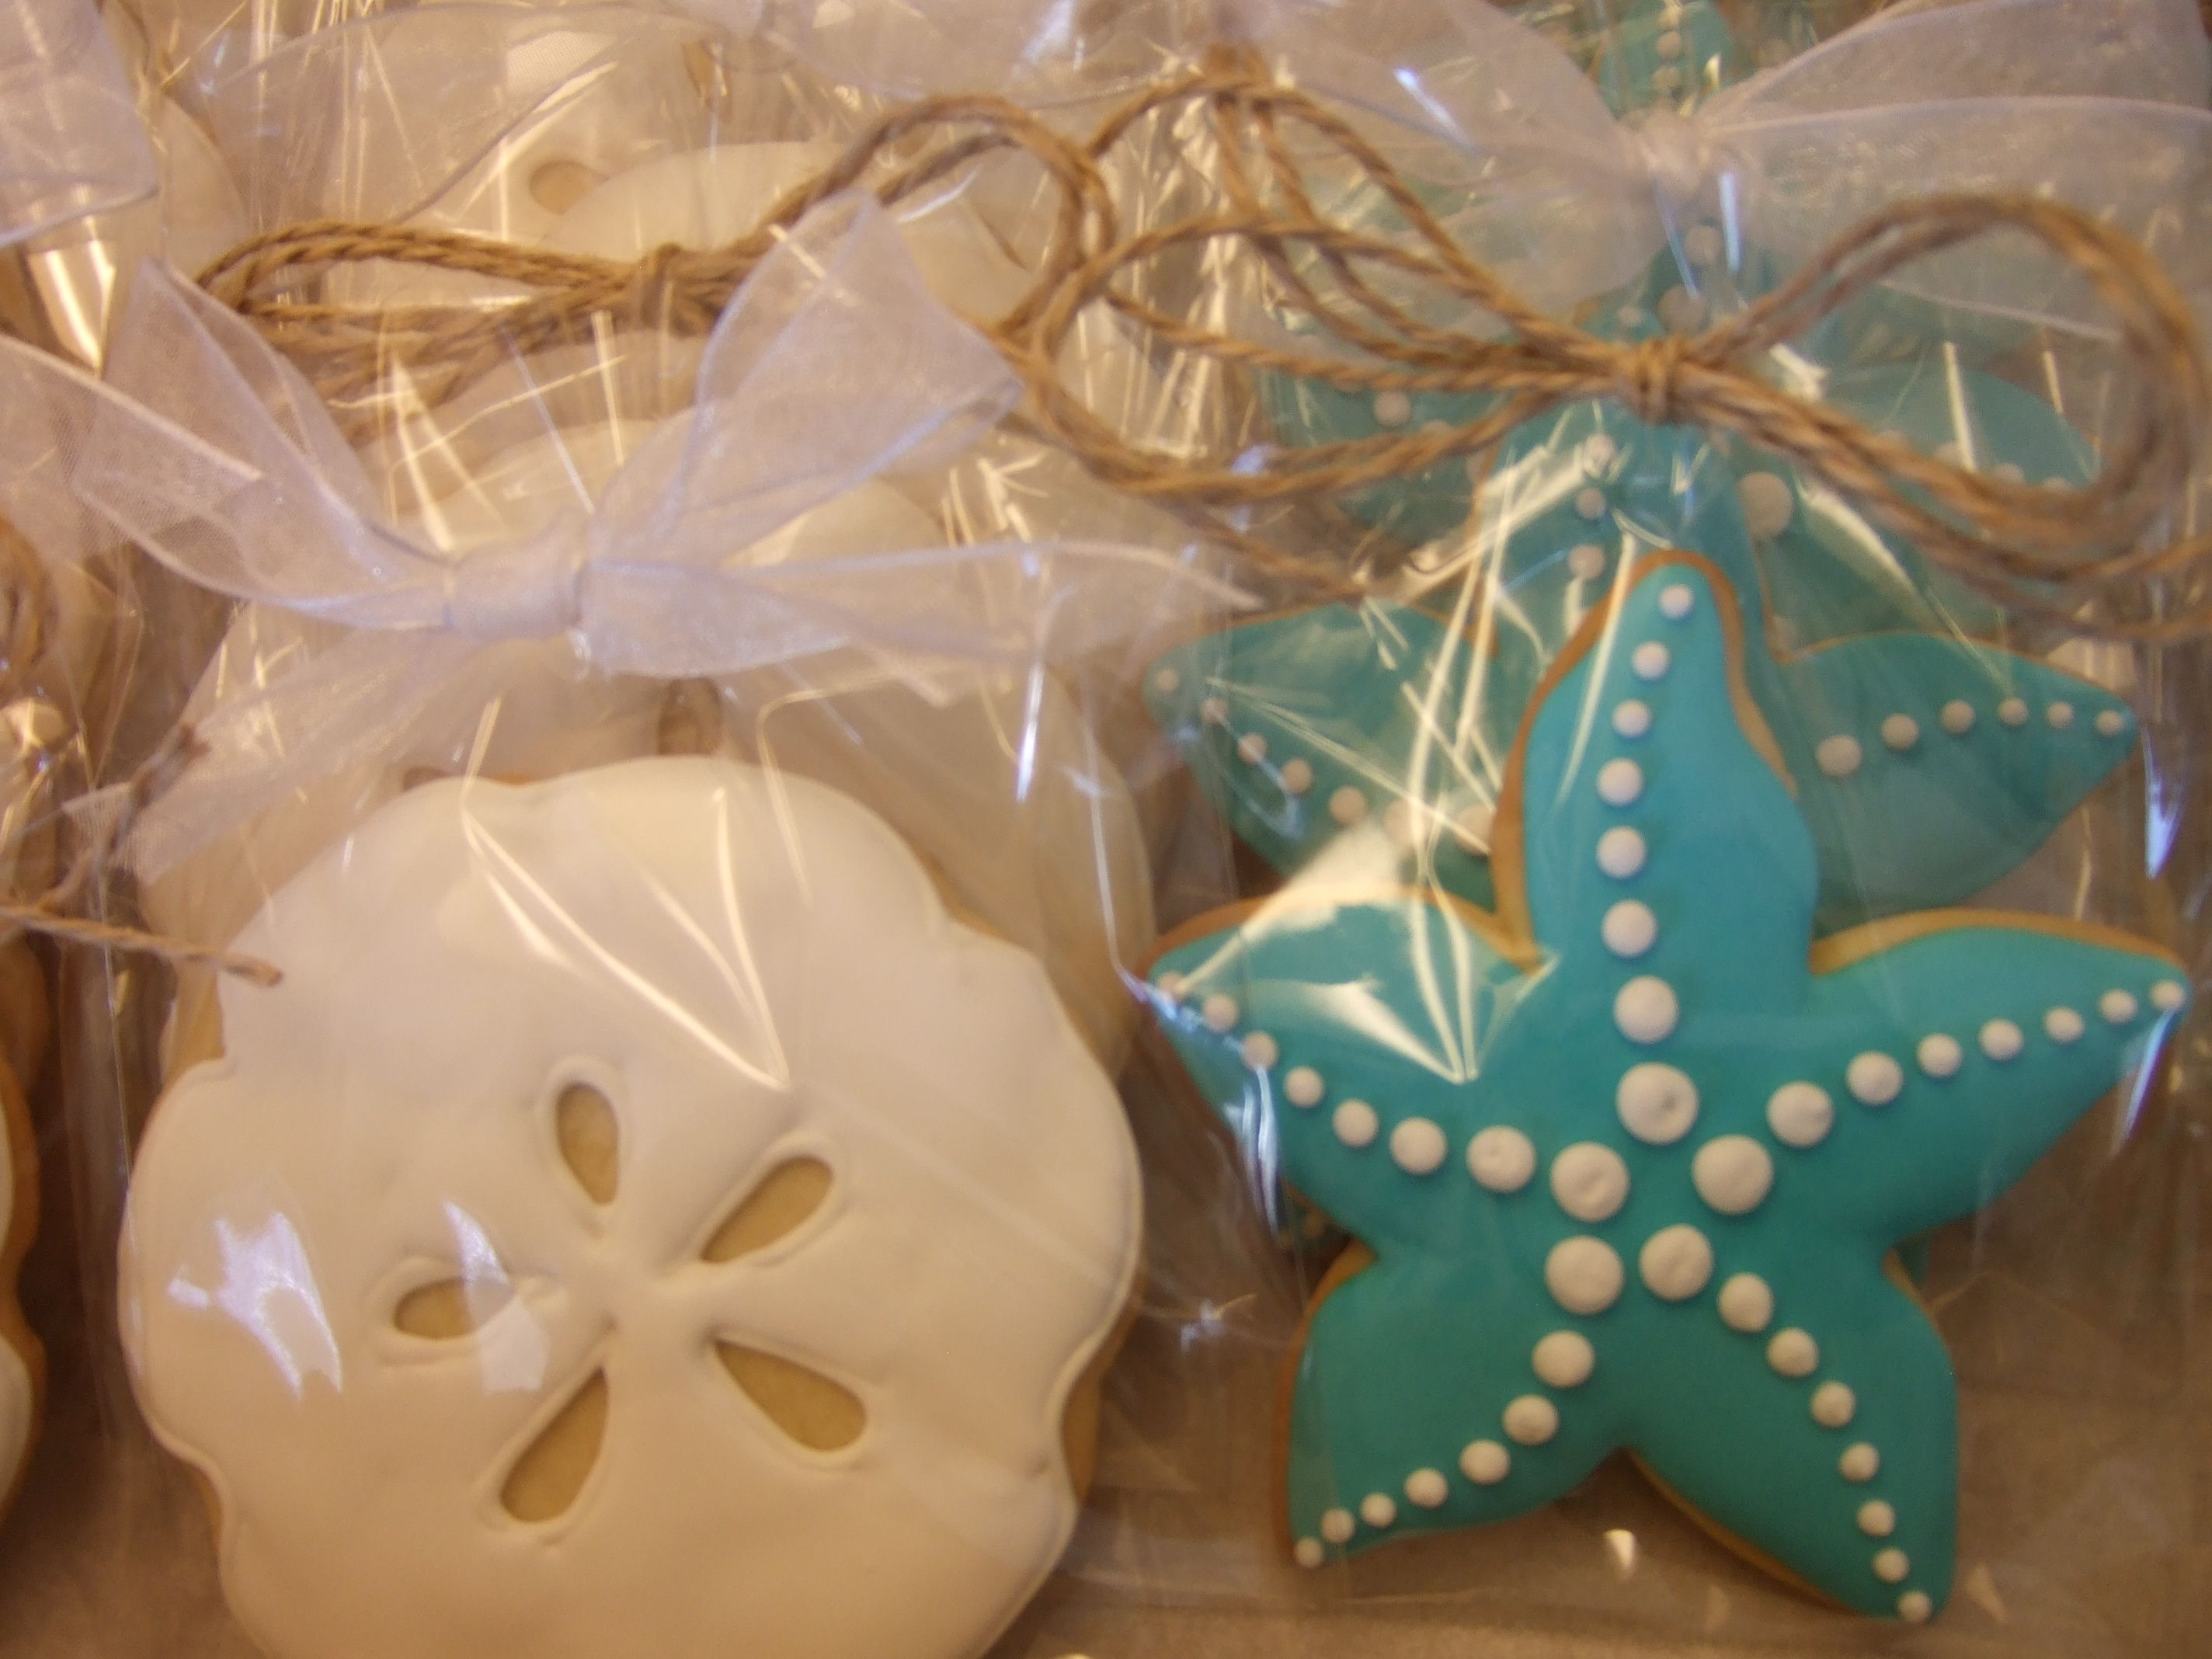 sand dollar starfish sugar cookies for a beach theme party shower